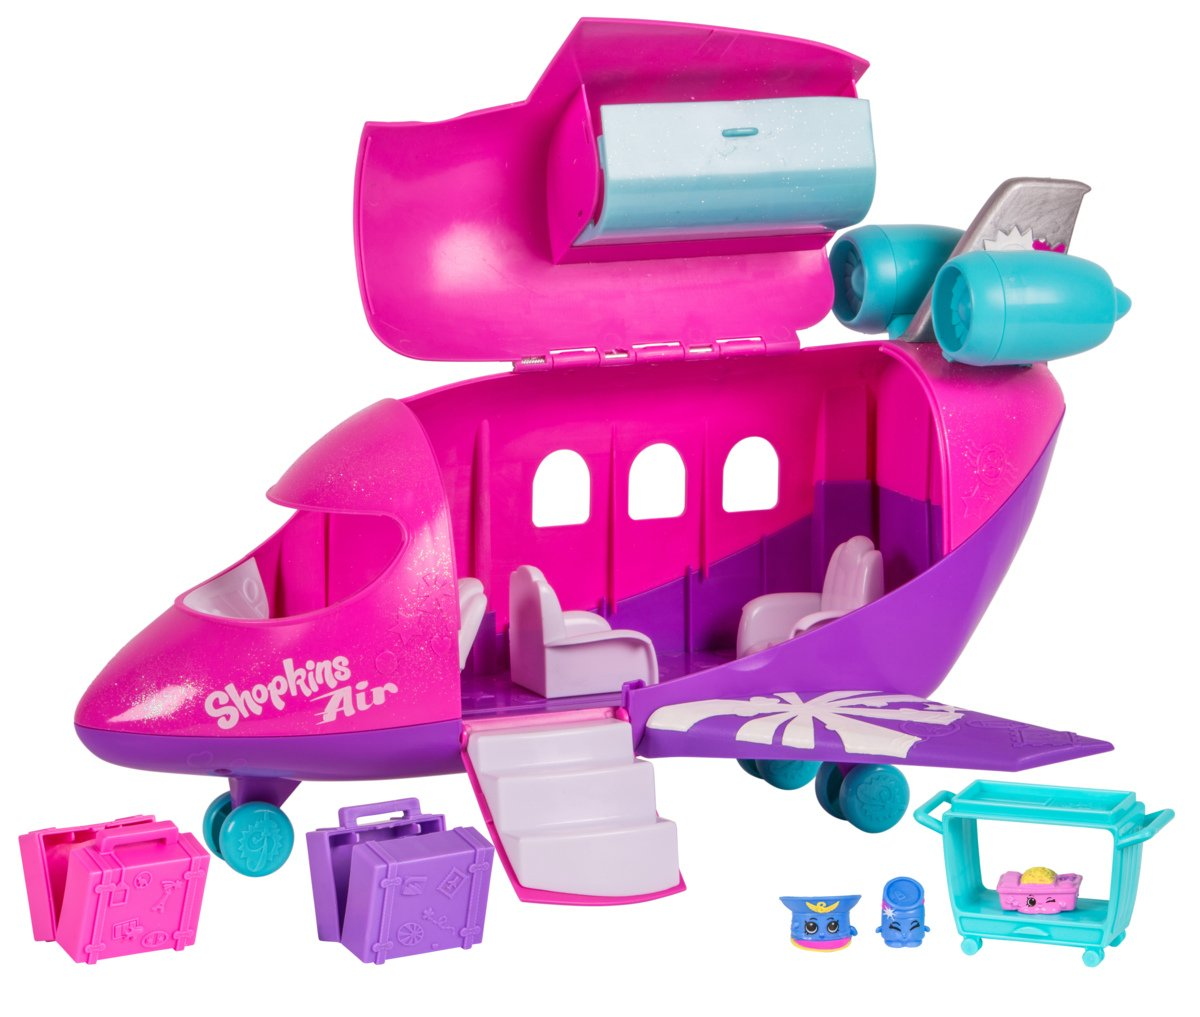 Shopkins Plane Playset, Plus 3 Exclusive Shopkins